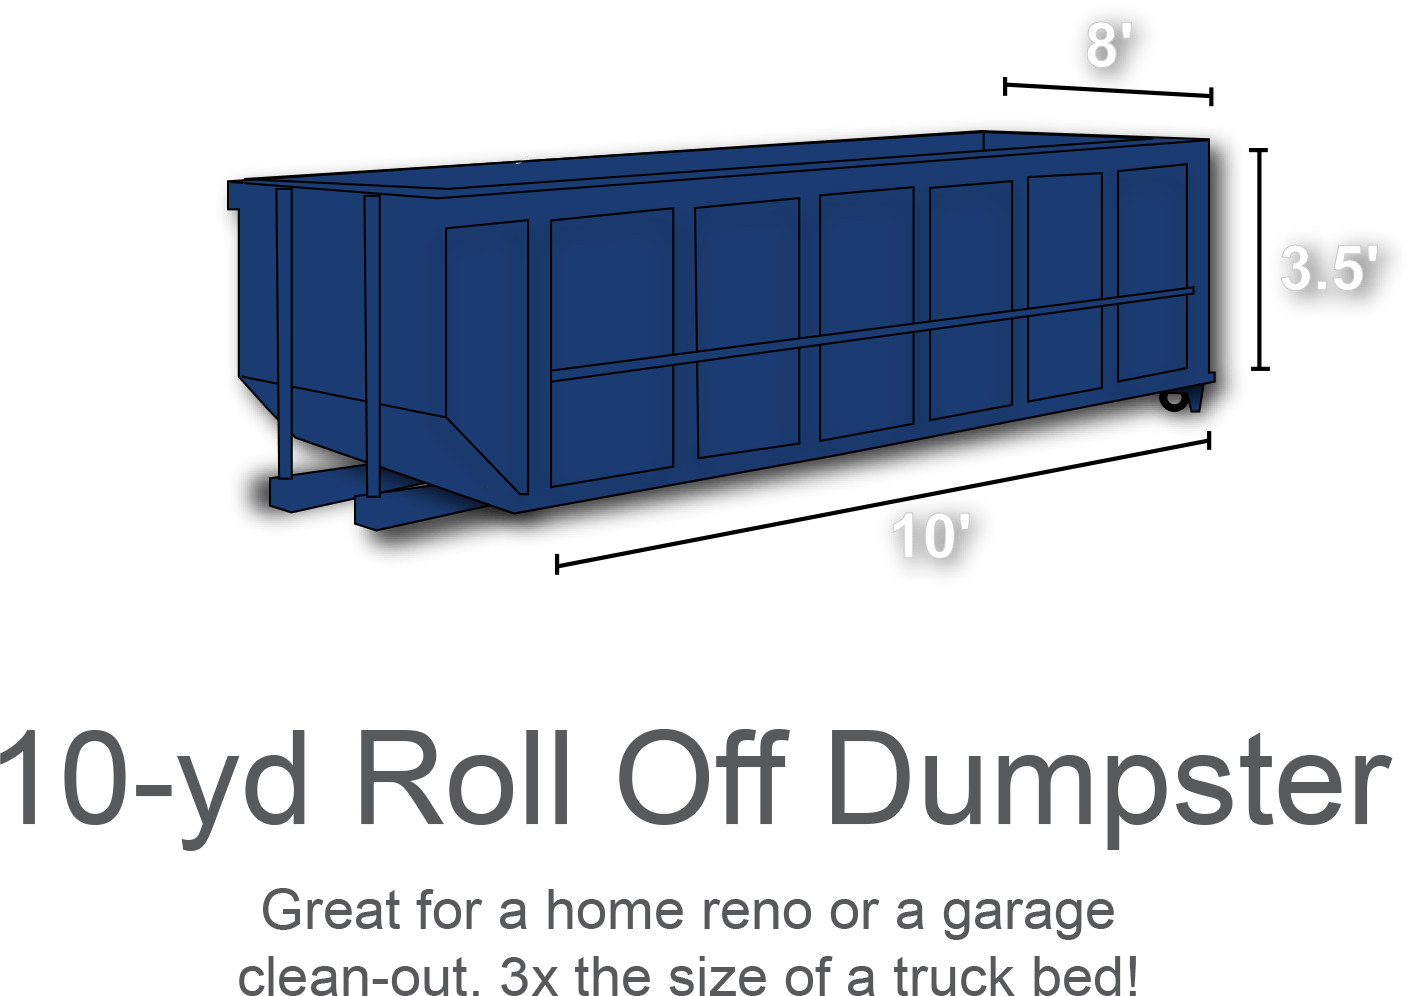 10 Yard Roll Off Dumpster Roll Off Dumpster Dumpster Rental Dumpster